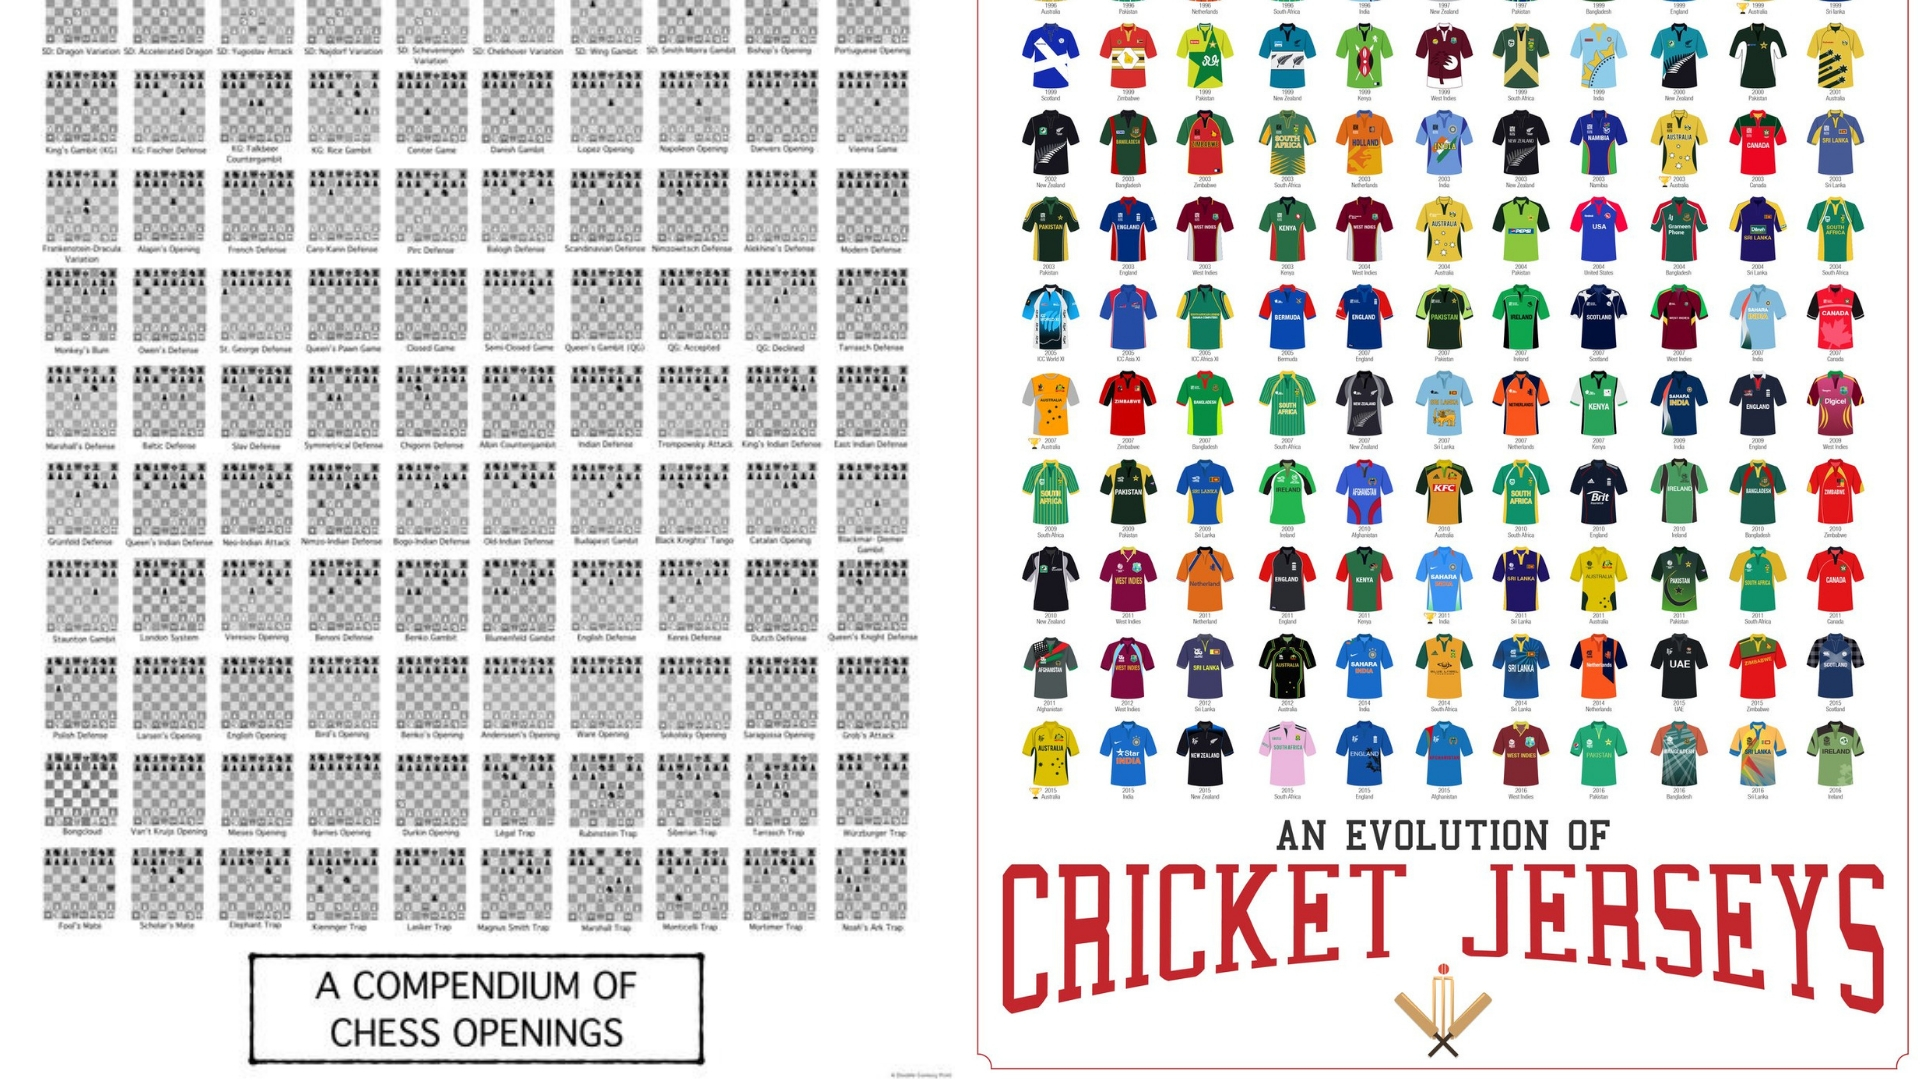 The 'Evolution of Cricket Kits' and the 'Compendium of Chess Openings.' Credit: Scorpia Prints